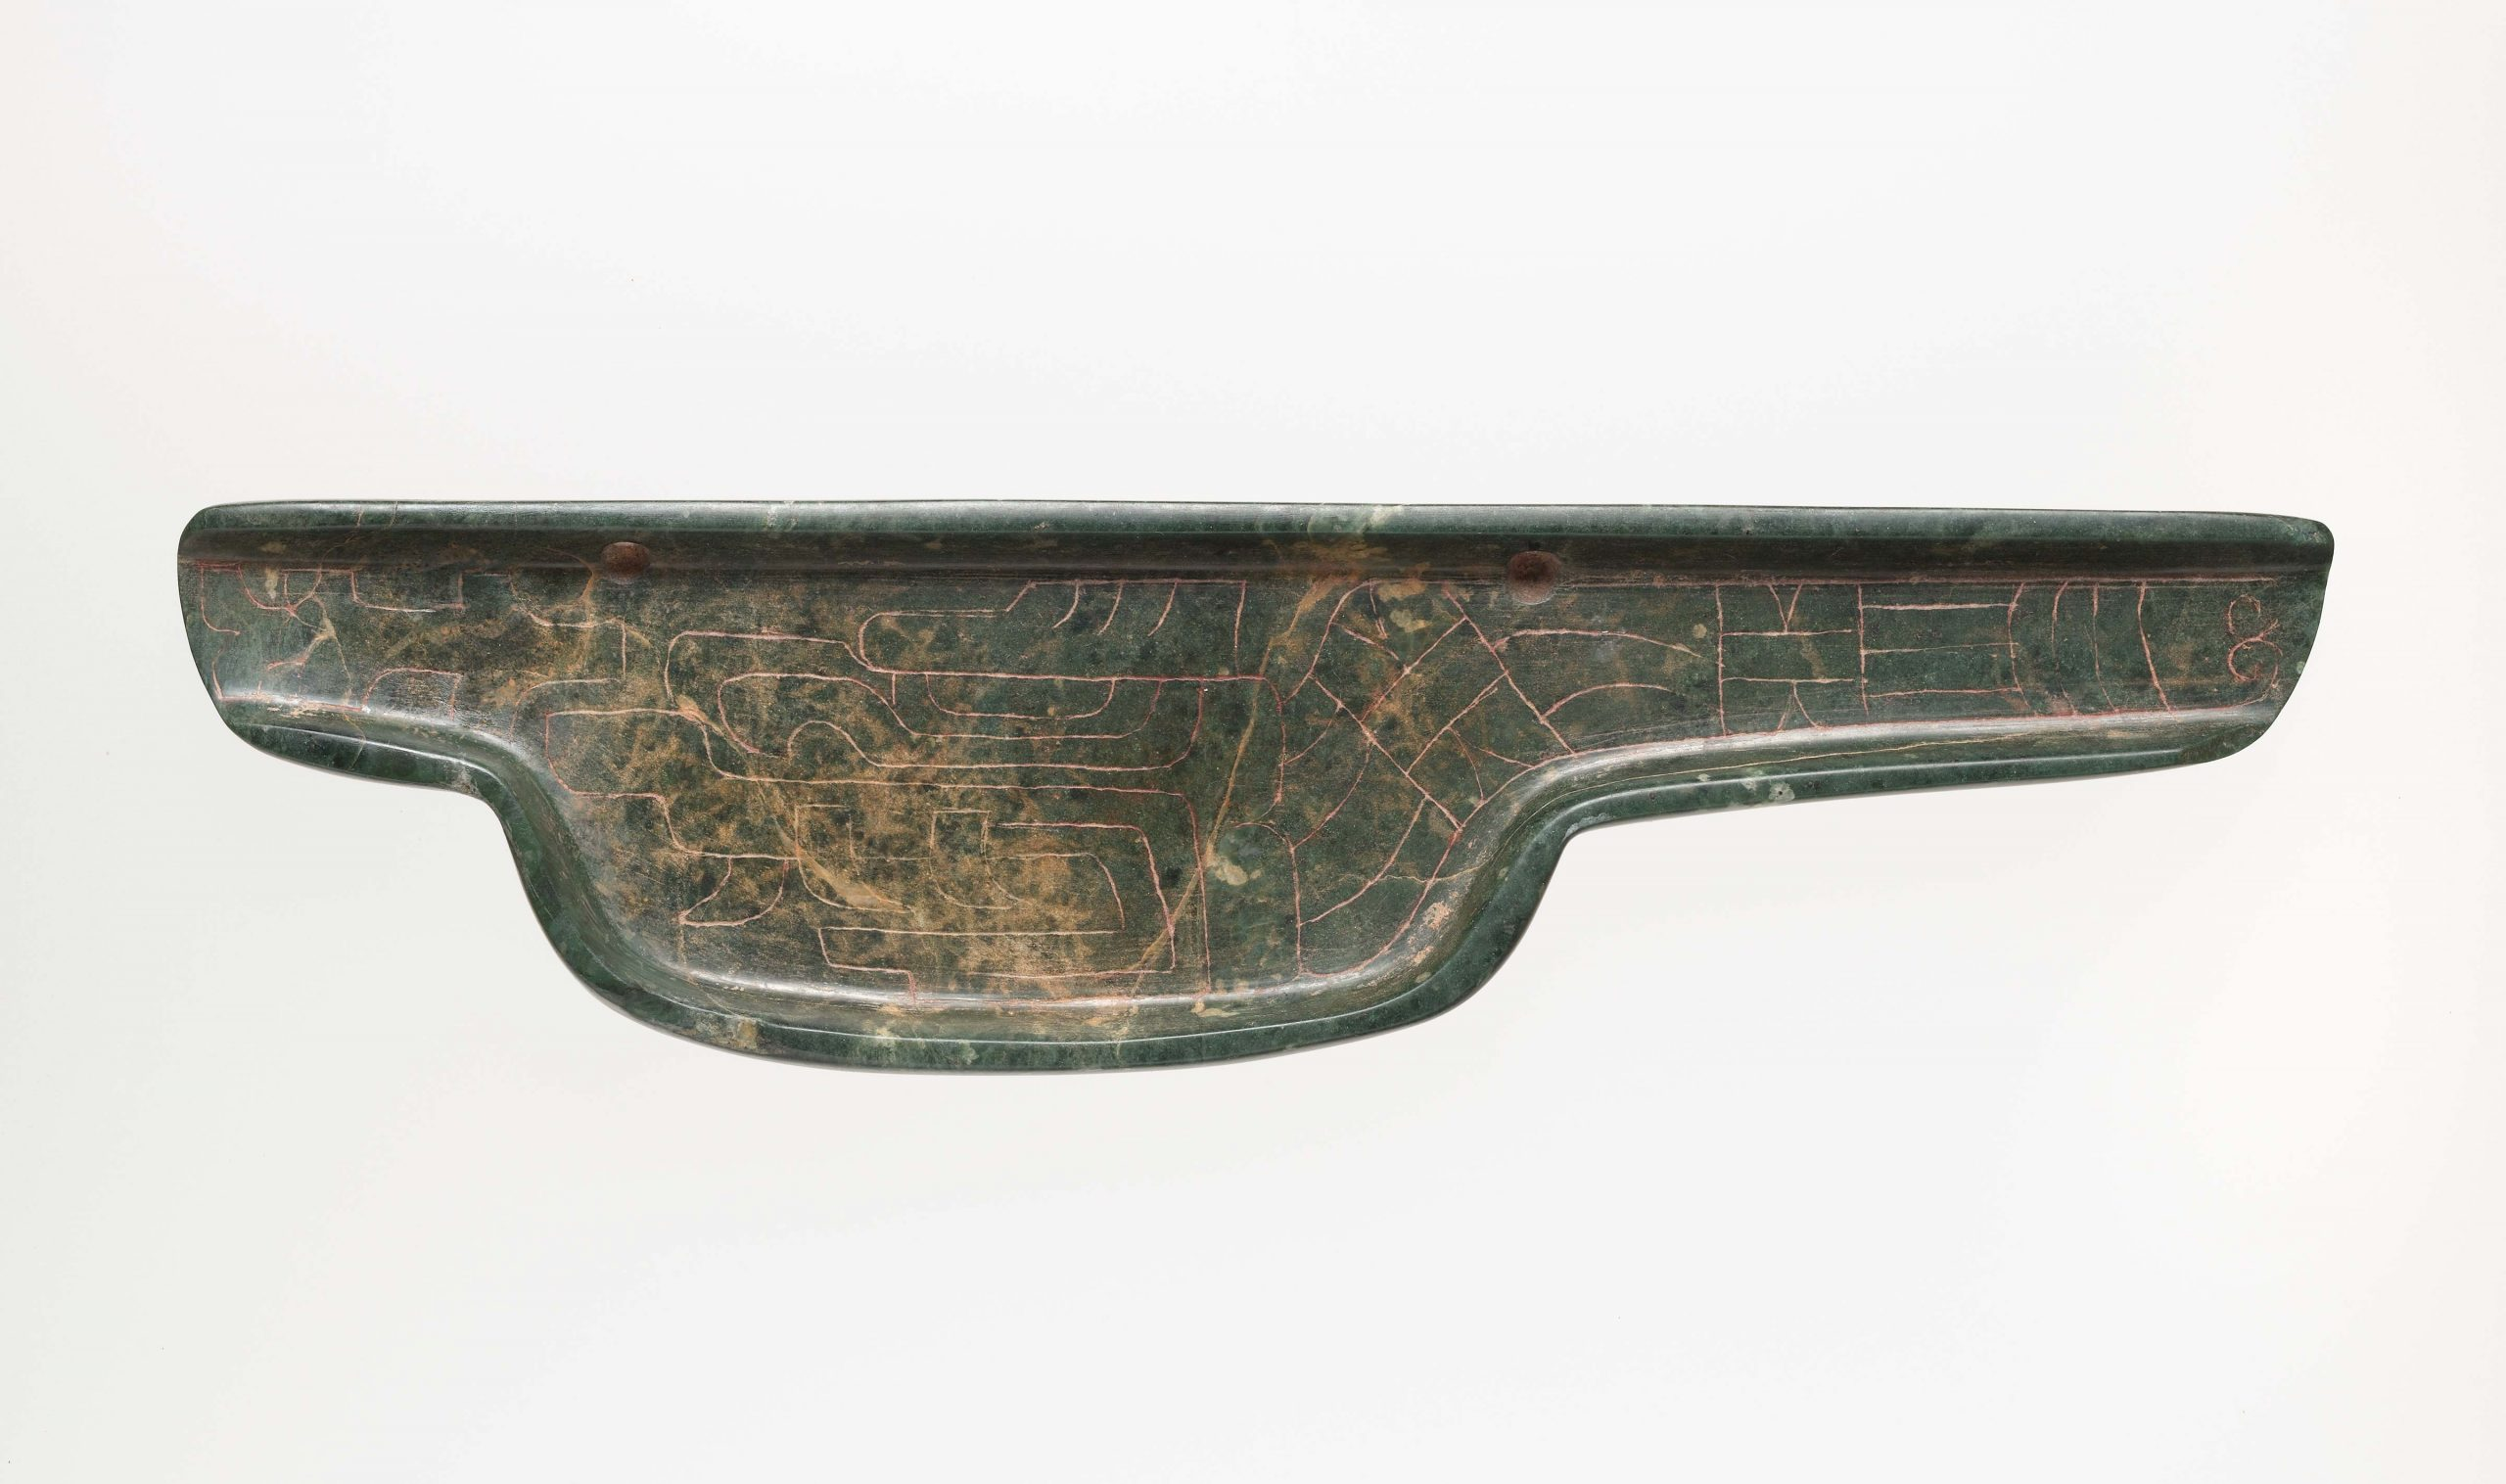 Flat, dark green celt with engraved imagery.